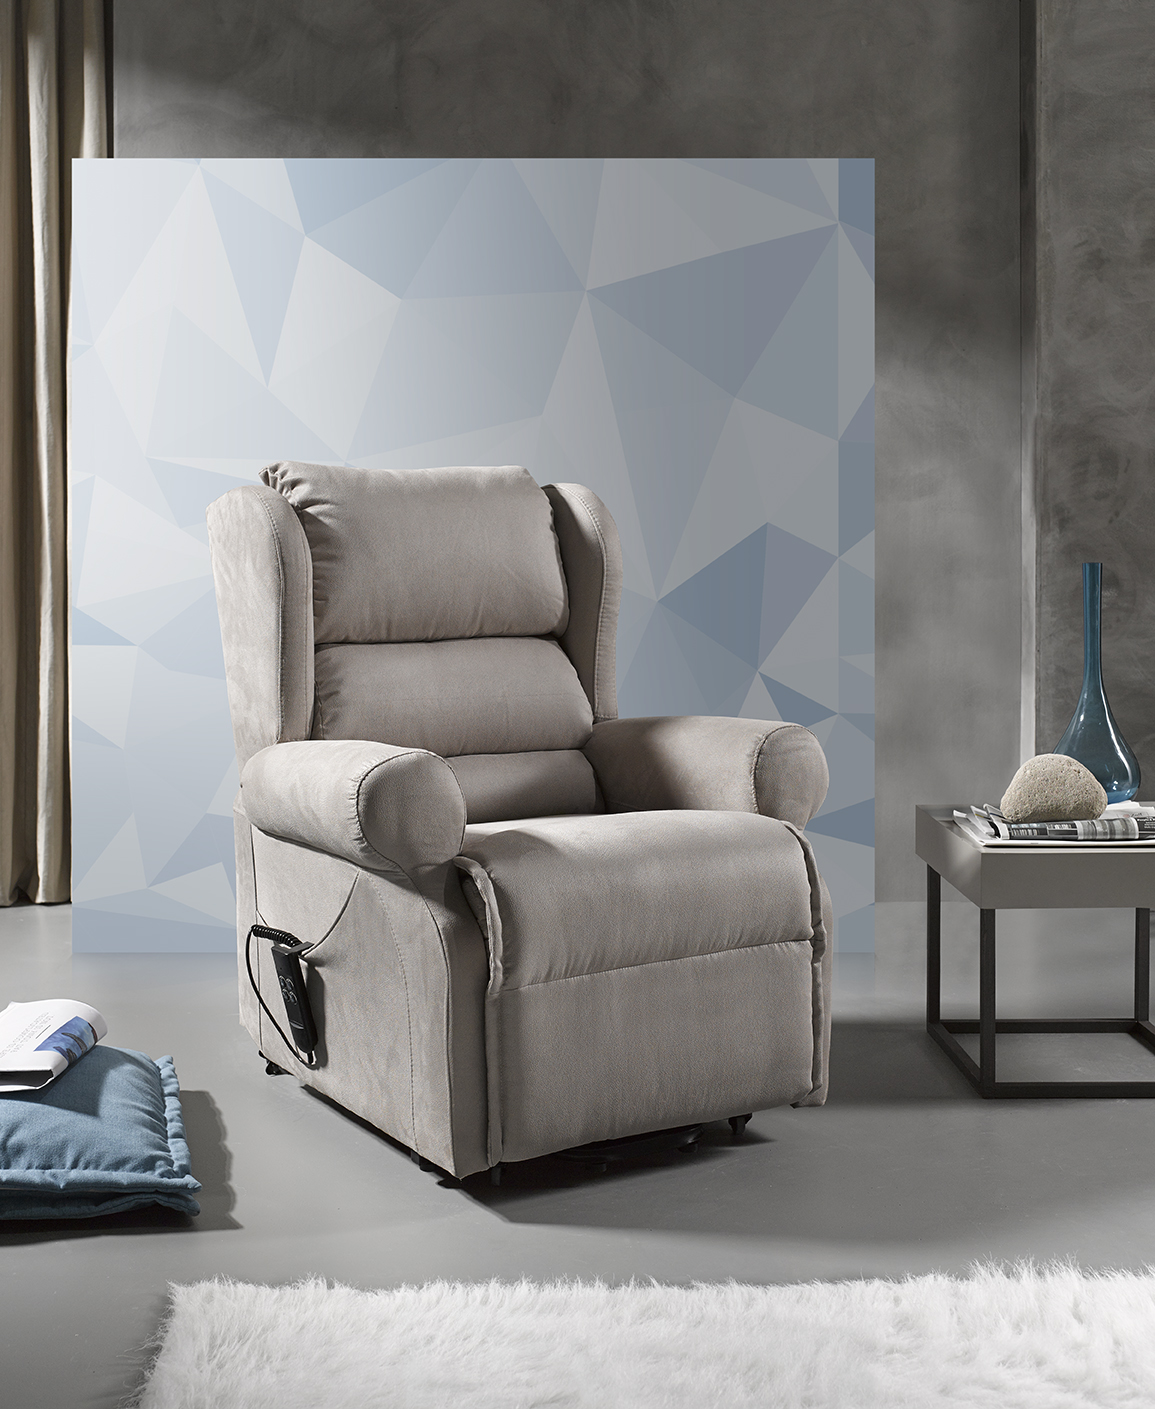 sillones-relax-General-muebles-paco-caballero-1720-5cb0ac954b714